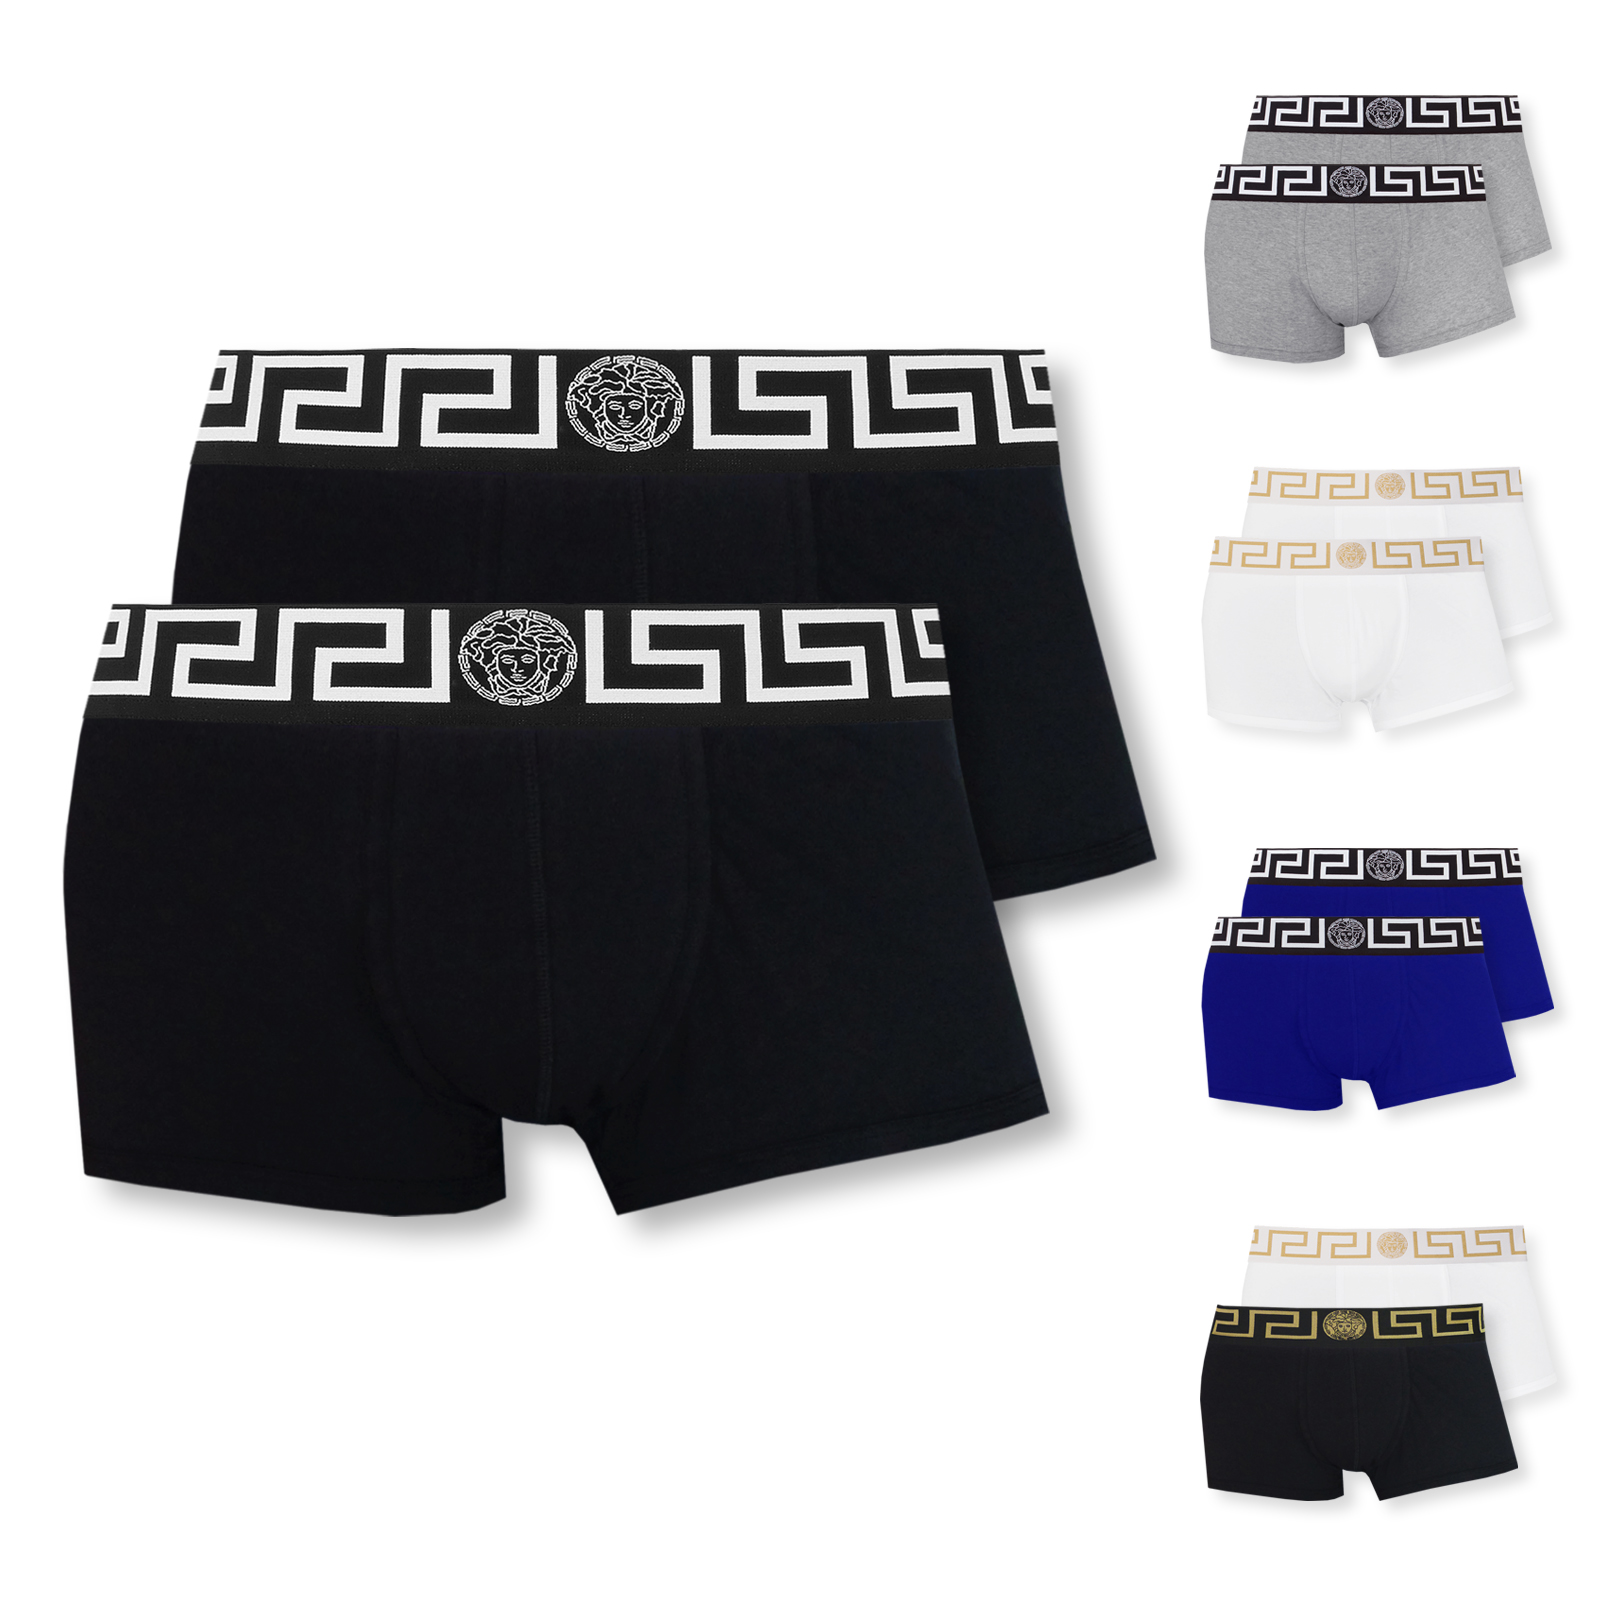 2er Pack Versace Boxershorts Low Rise Trunk Greca M L XL XXL in bianco vergrößern